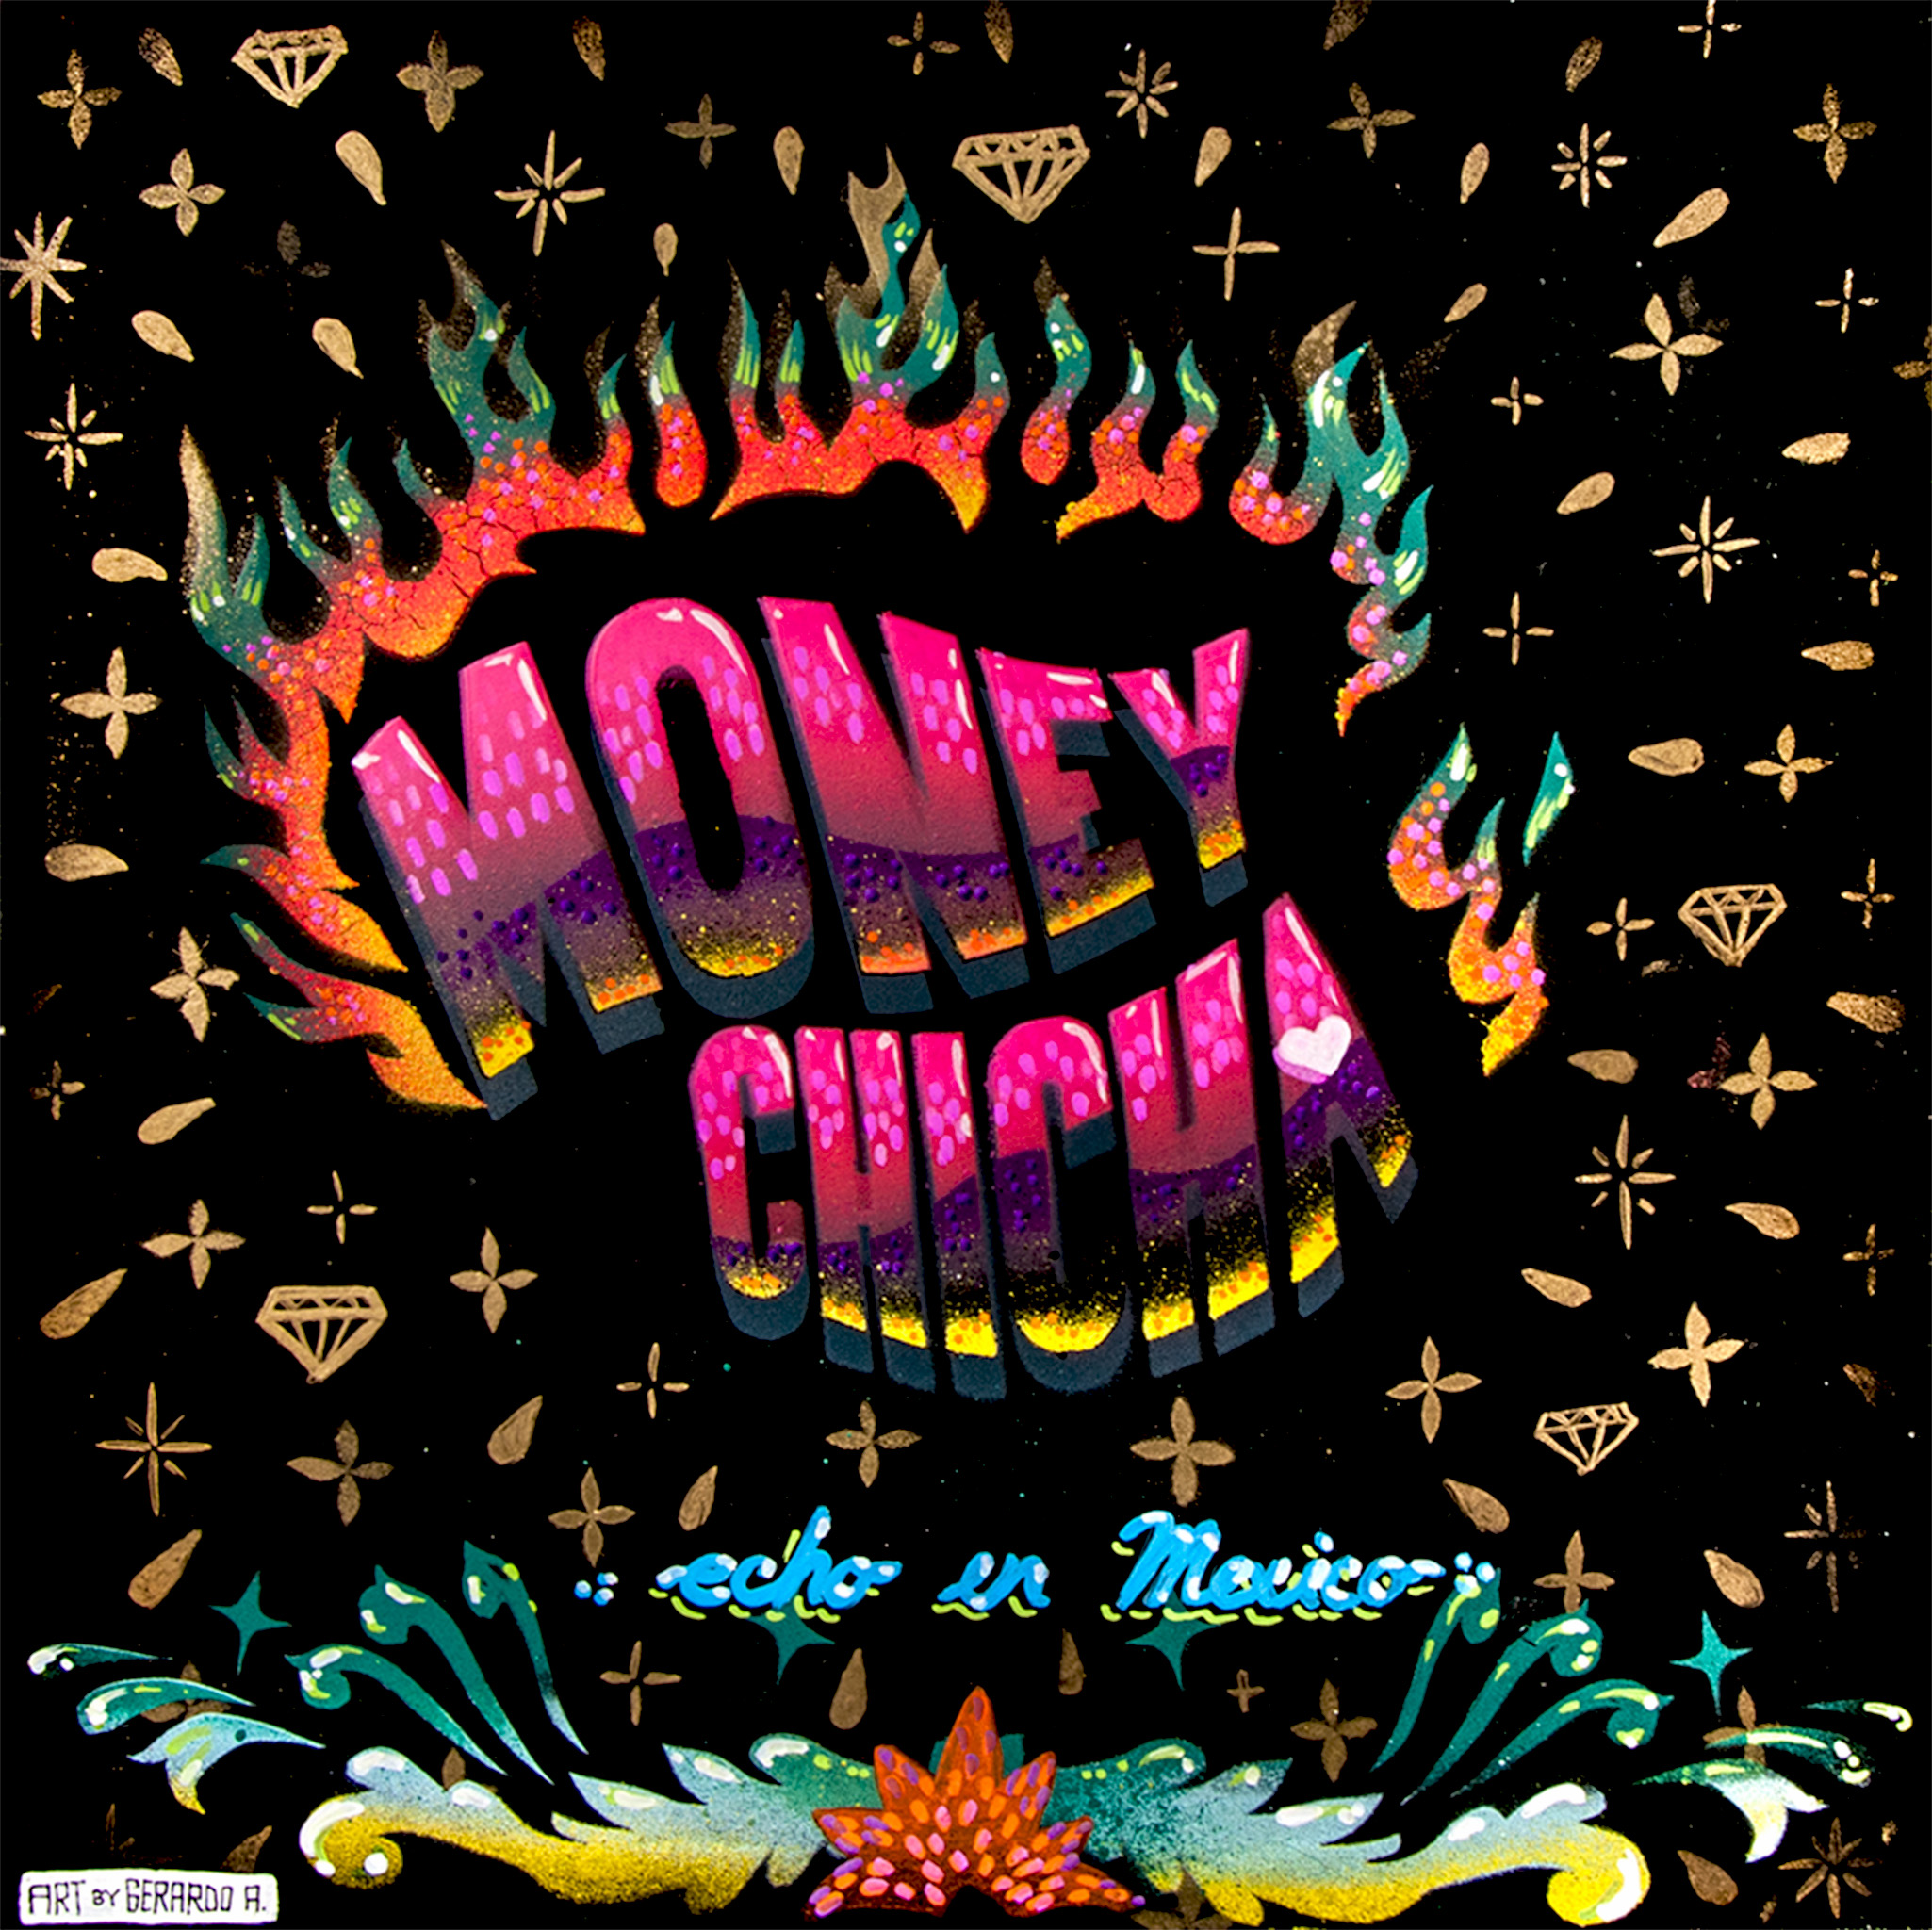 Money-Chica-by-Gerardo-Arellano-0994